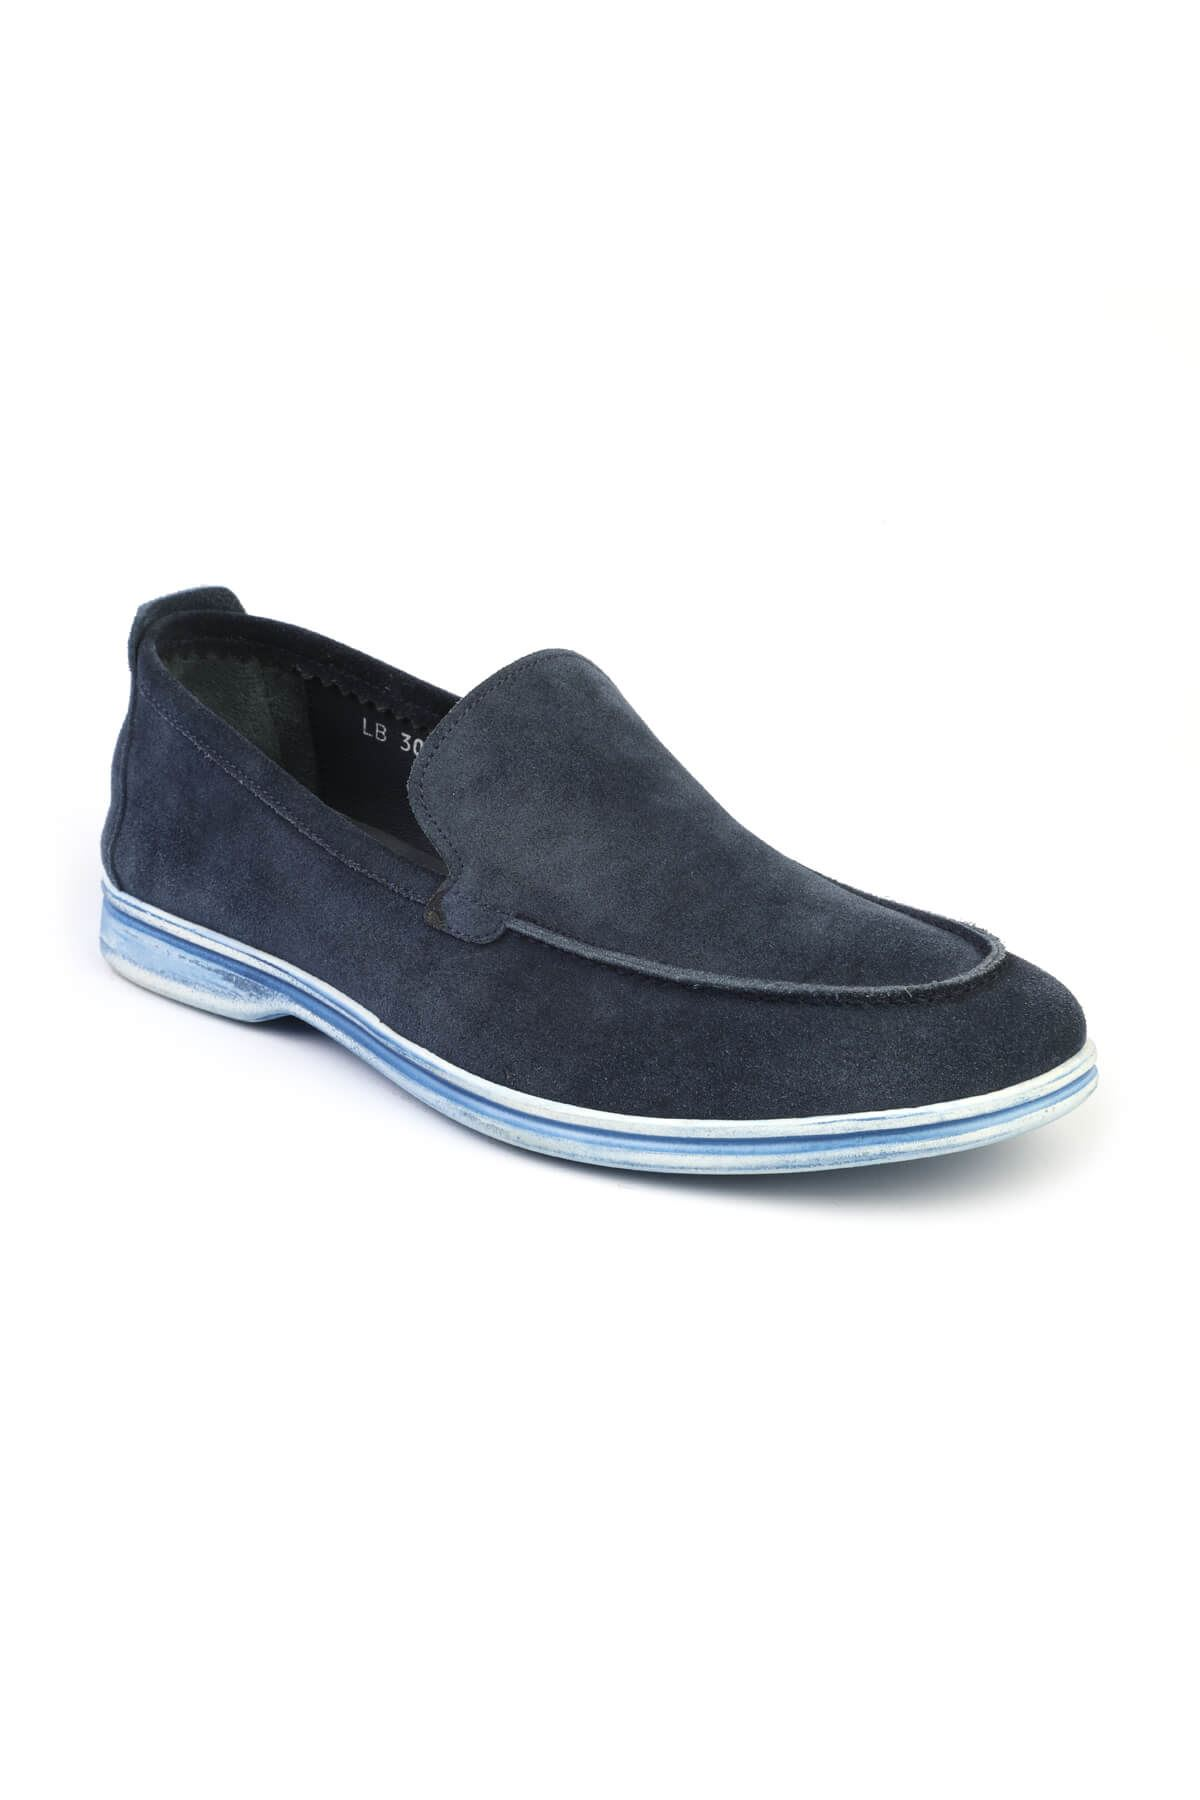 Libero 3004 Navy Blue Loafer Shoes